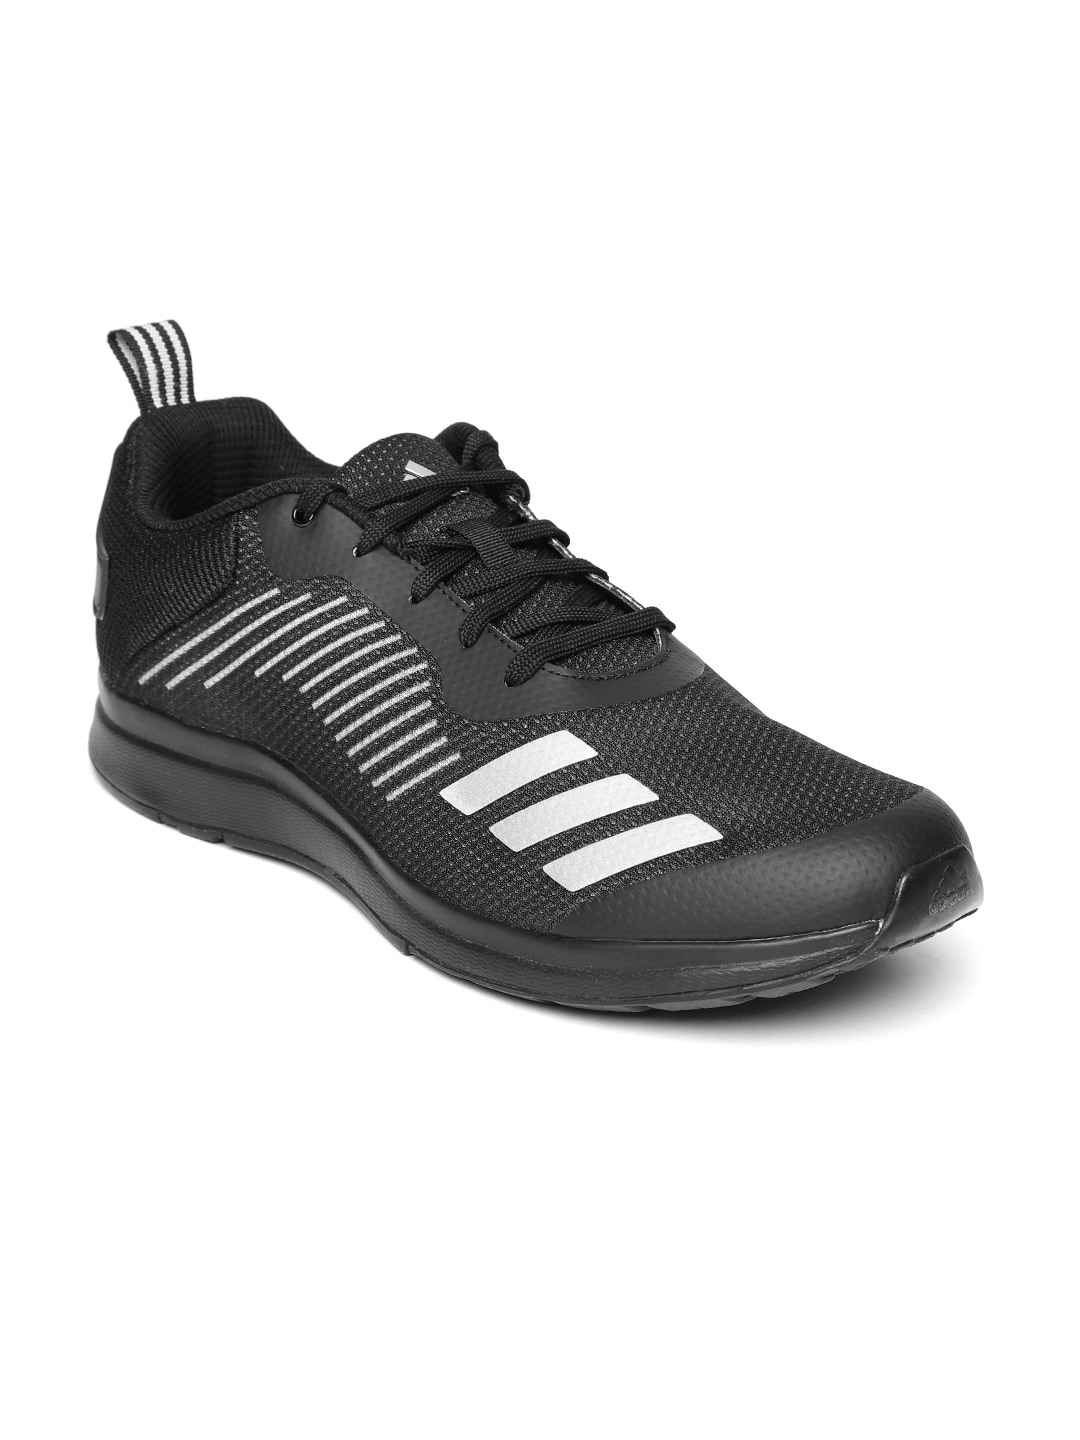 5e3553217dc Adidas Shoes Shoe - Buy Adidas Shoes Shoe online in India